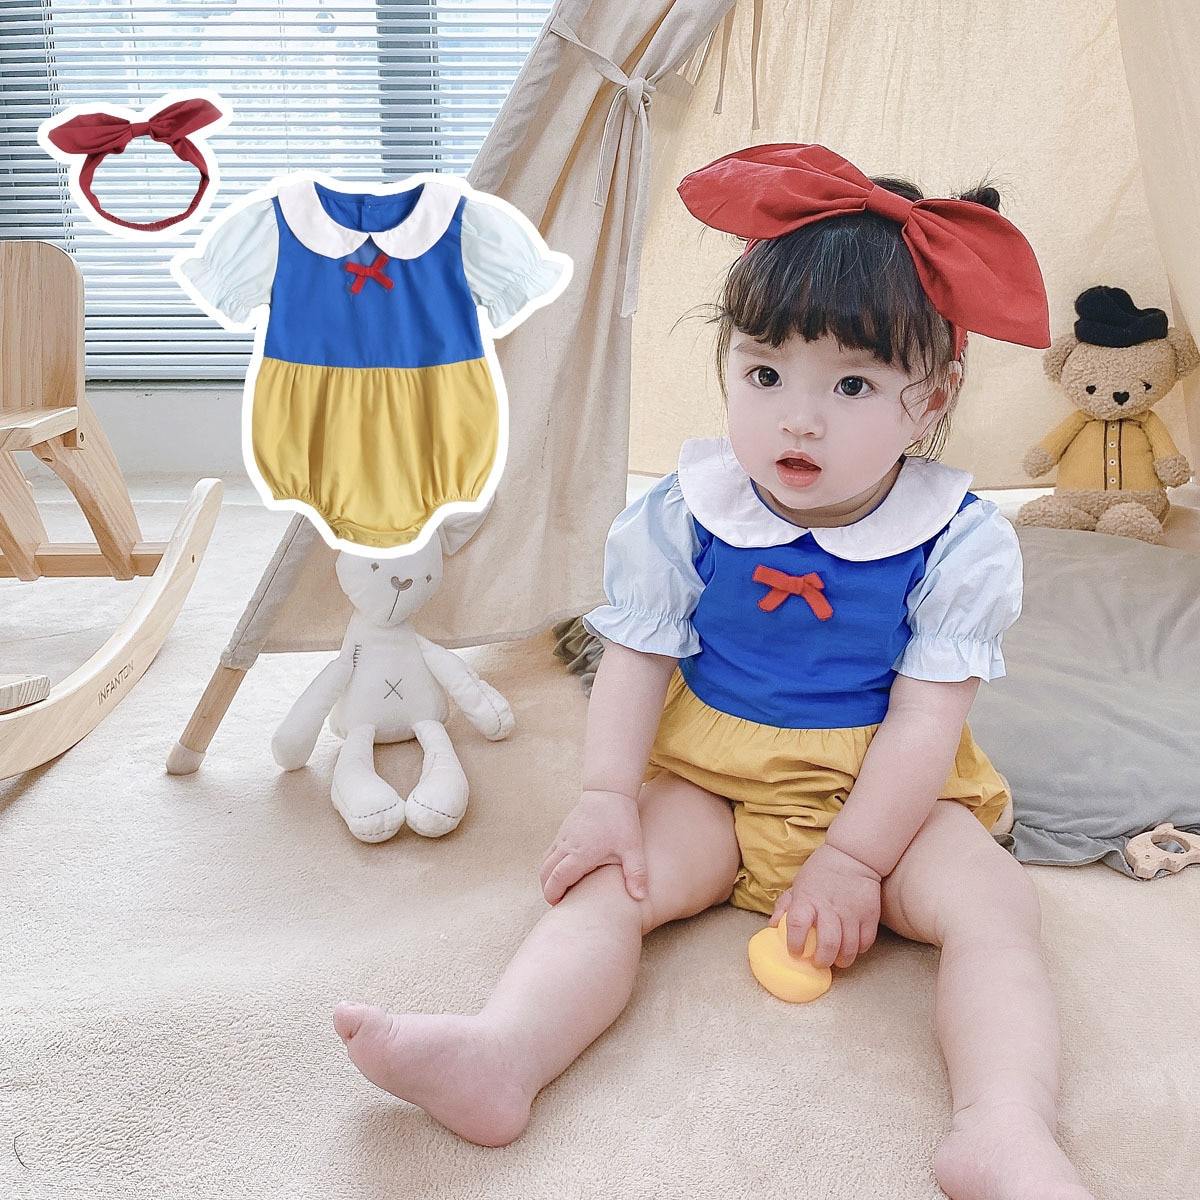 Yg brand children's clothing summer baby clothes fashion baby collar short creeping clothes newborn